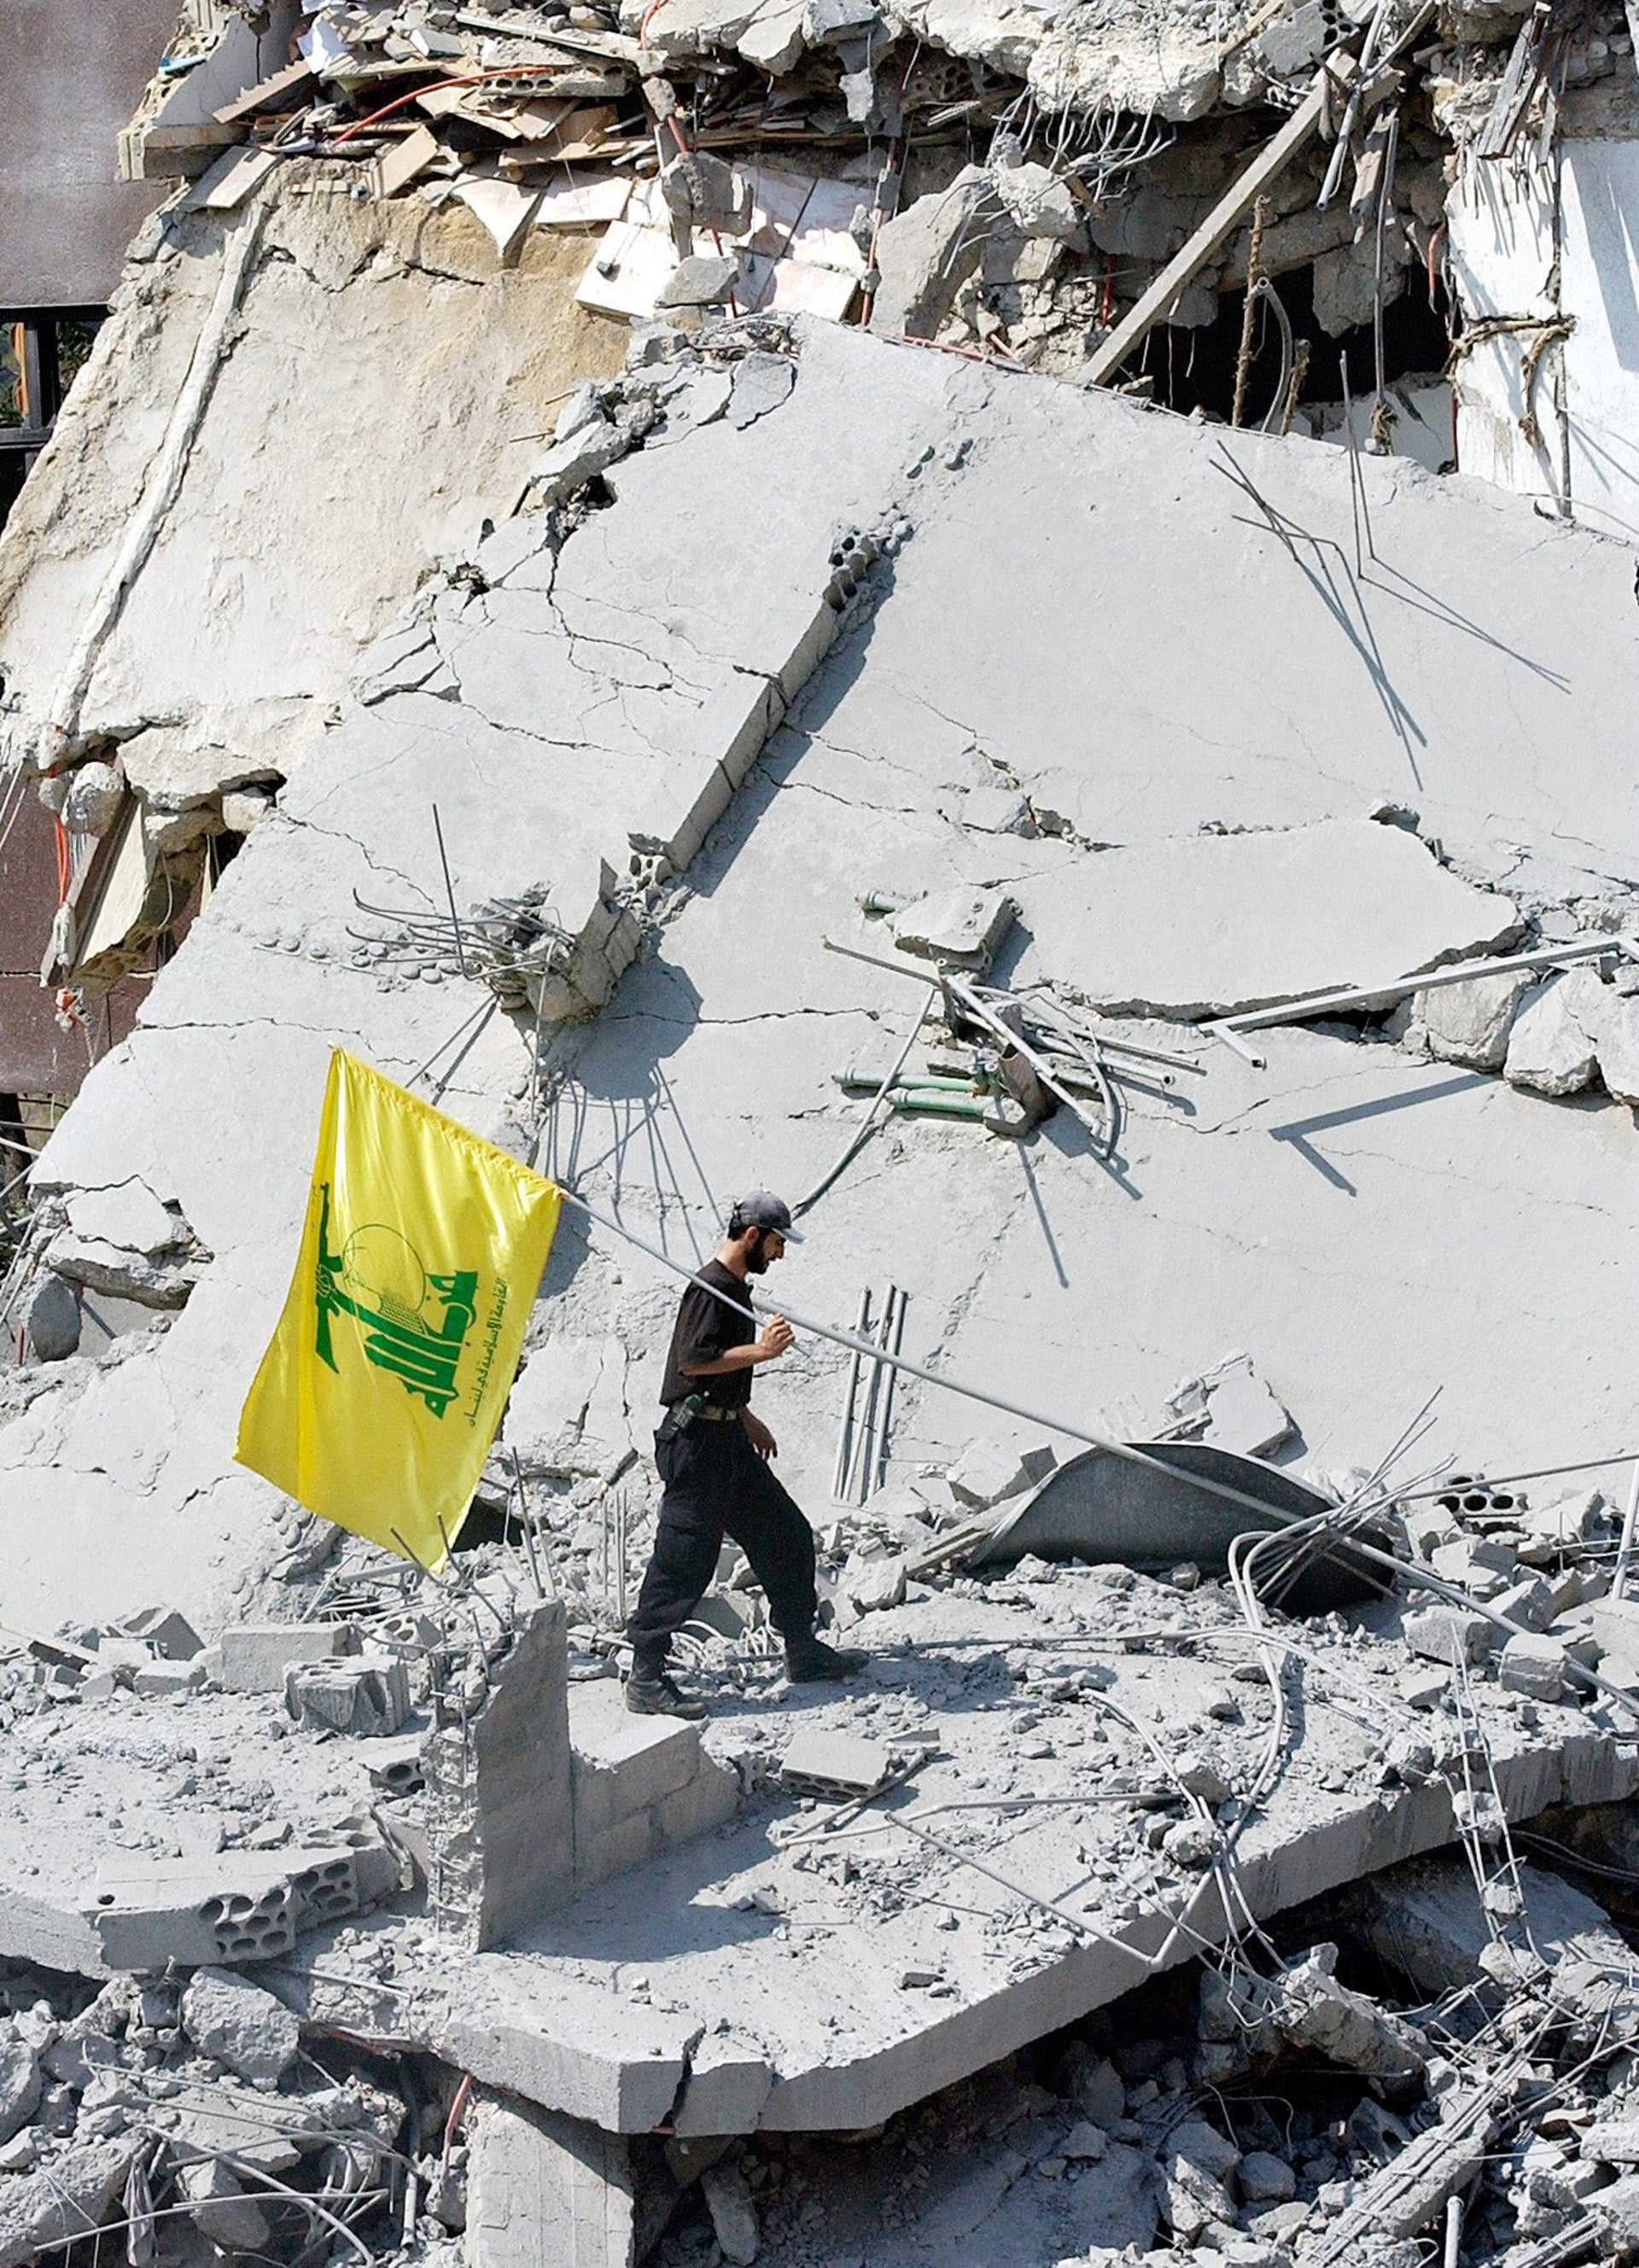 A Lebanese member of the Hezbollah militant group poses for the media with his group's yellow flag on the rubble of a destroyed apartment building, in the village of Jbaa, east of the port city of Sidon, southern Lebanon, Saturday, July 29, 2006, after it was hit by Israeli airstrikes overnight. Israeli troops and Hezbollah guerrillas traded heavy bombardment and gunfire Saturday around a Lebanese border town that Israel has tried to capture for the past week, facing tough and bloody resistance. Warplanes blasted bridges, flying some 120 missions in the past day and a half.